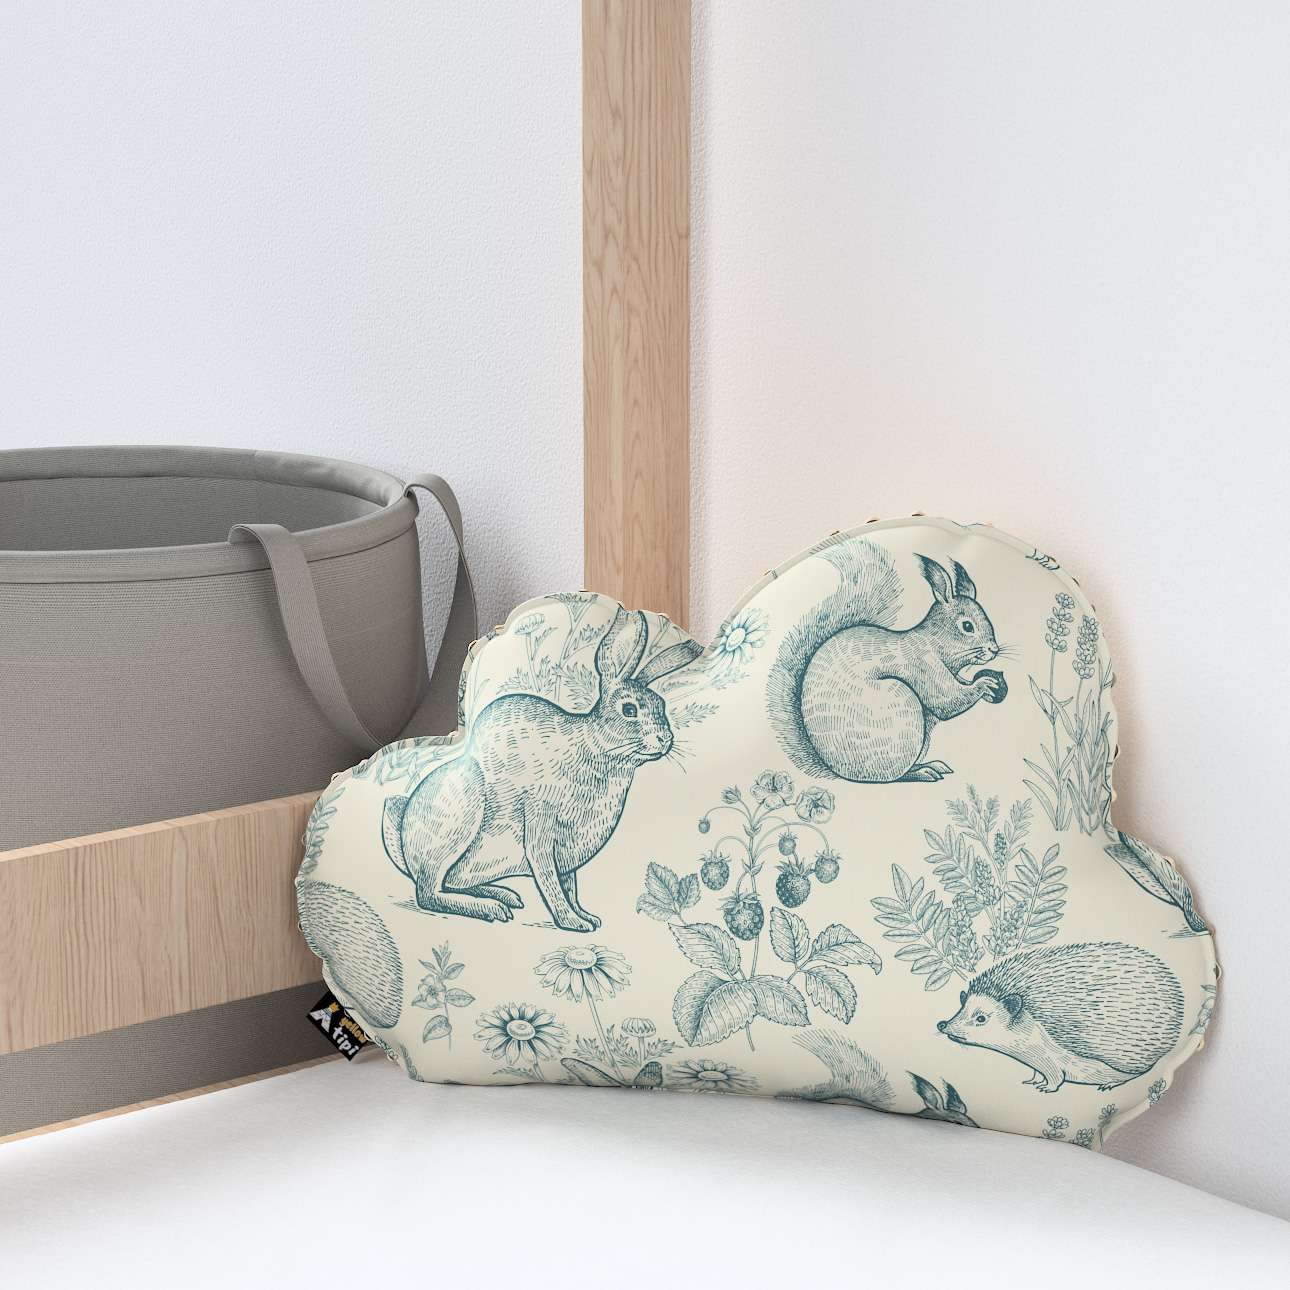 Soft Cloud pillow with minky in collection Magic Collection, fabric: 500-04